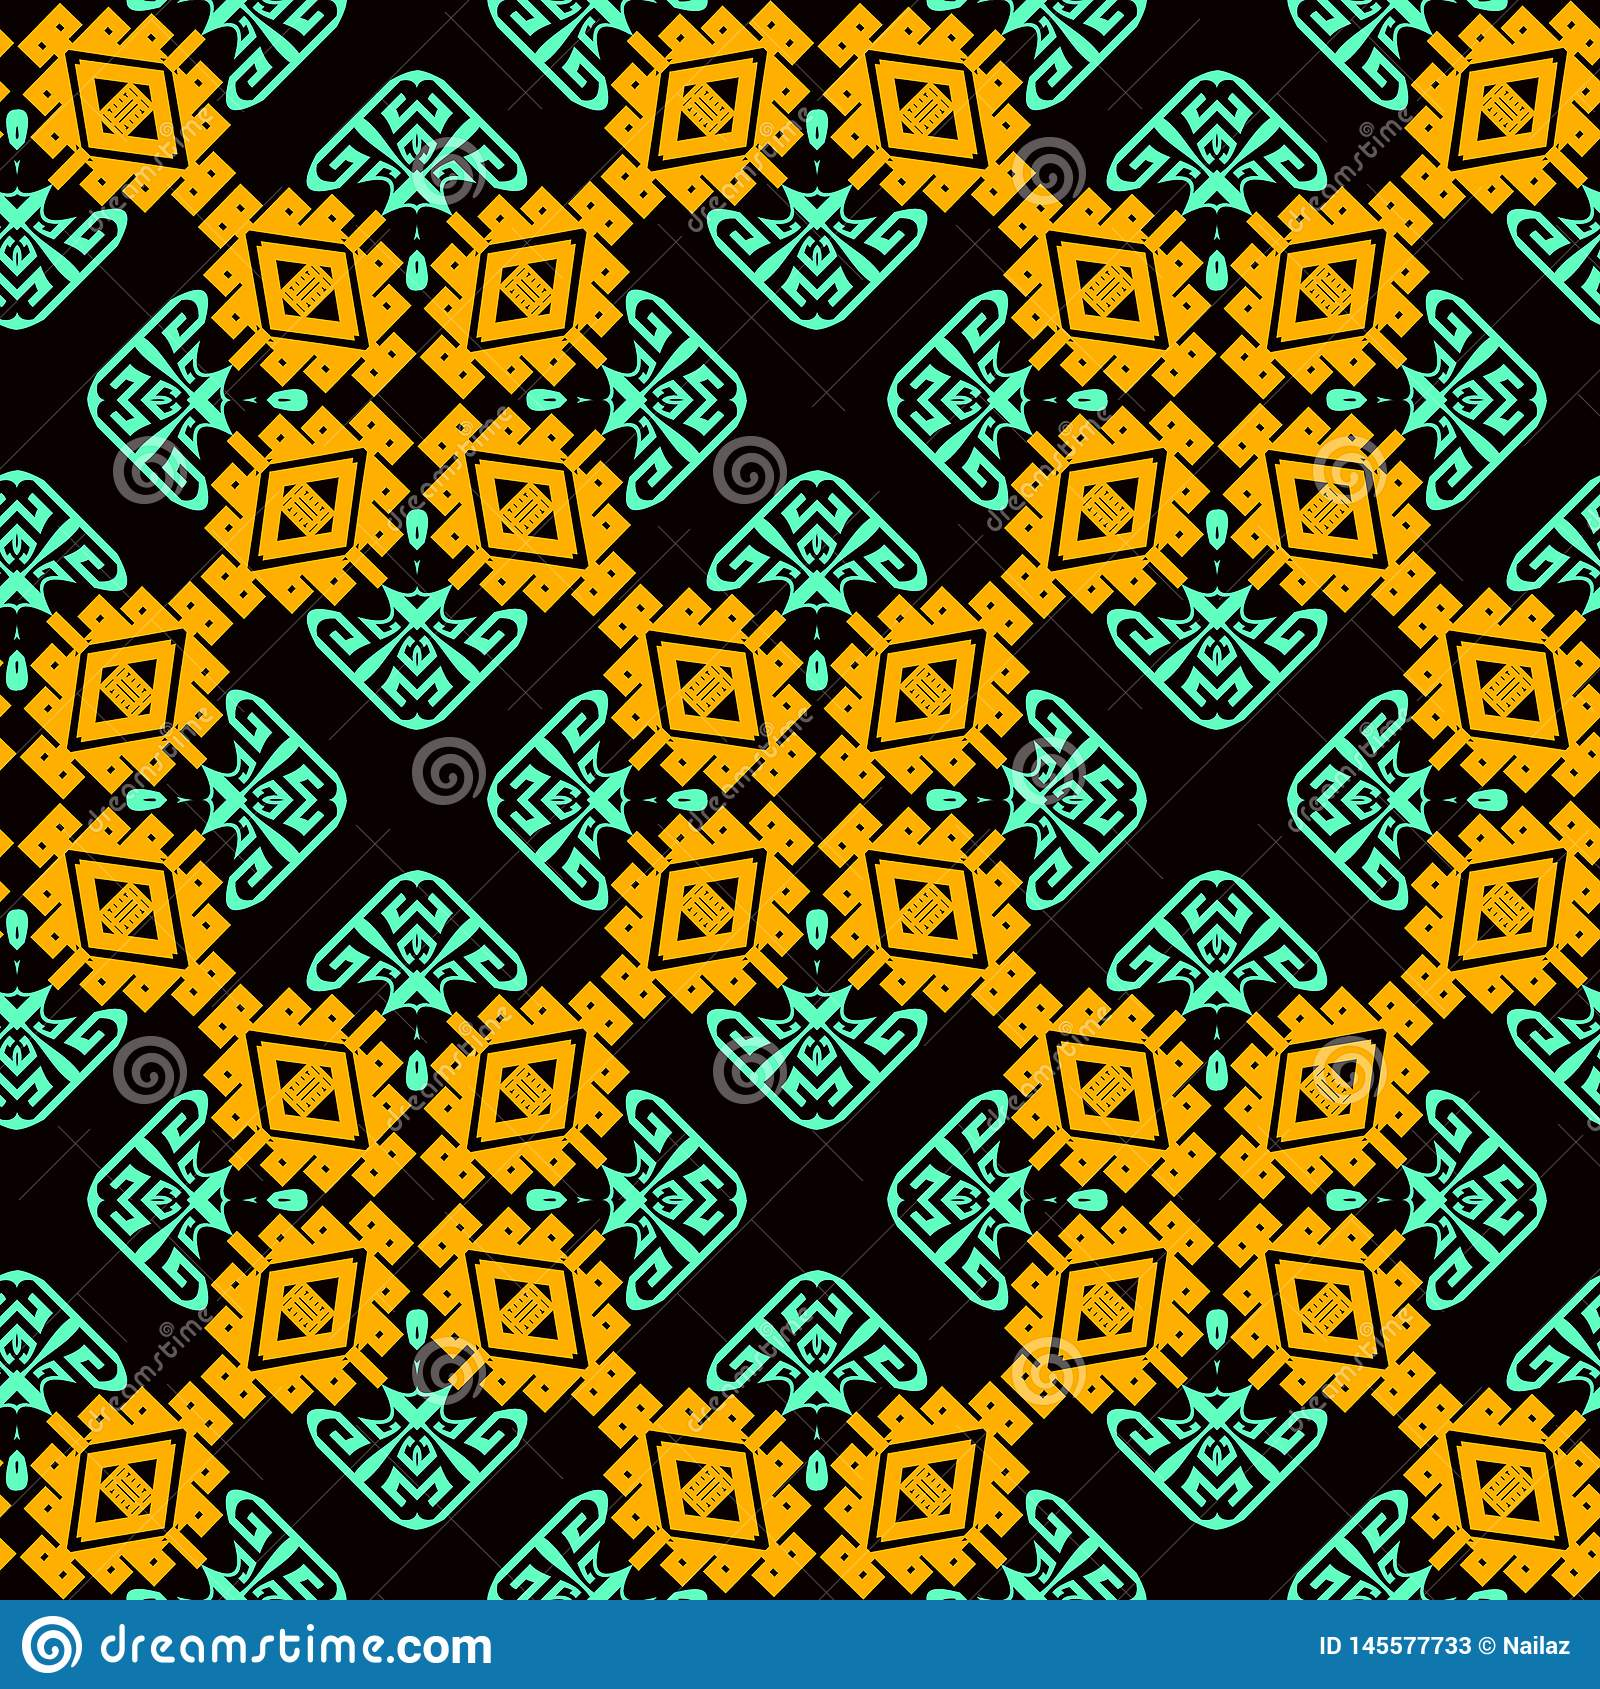 Ornamental colorful tribal vector seamless pattern. Ethnic style patterned geometric background. Repeat tiles backdrop. Greek key